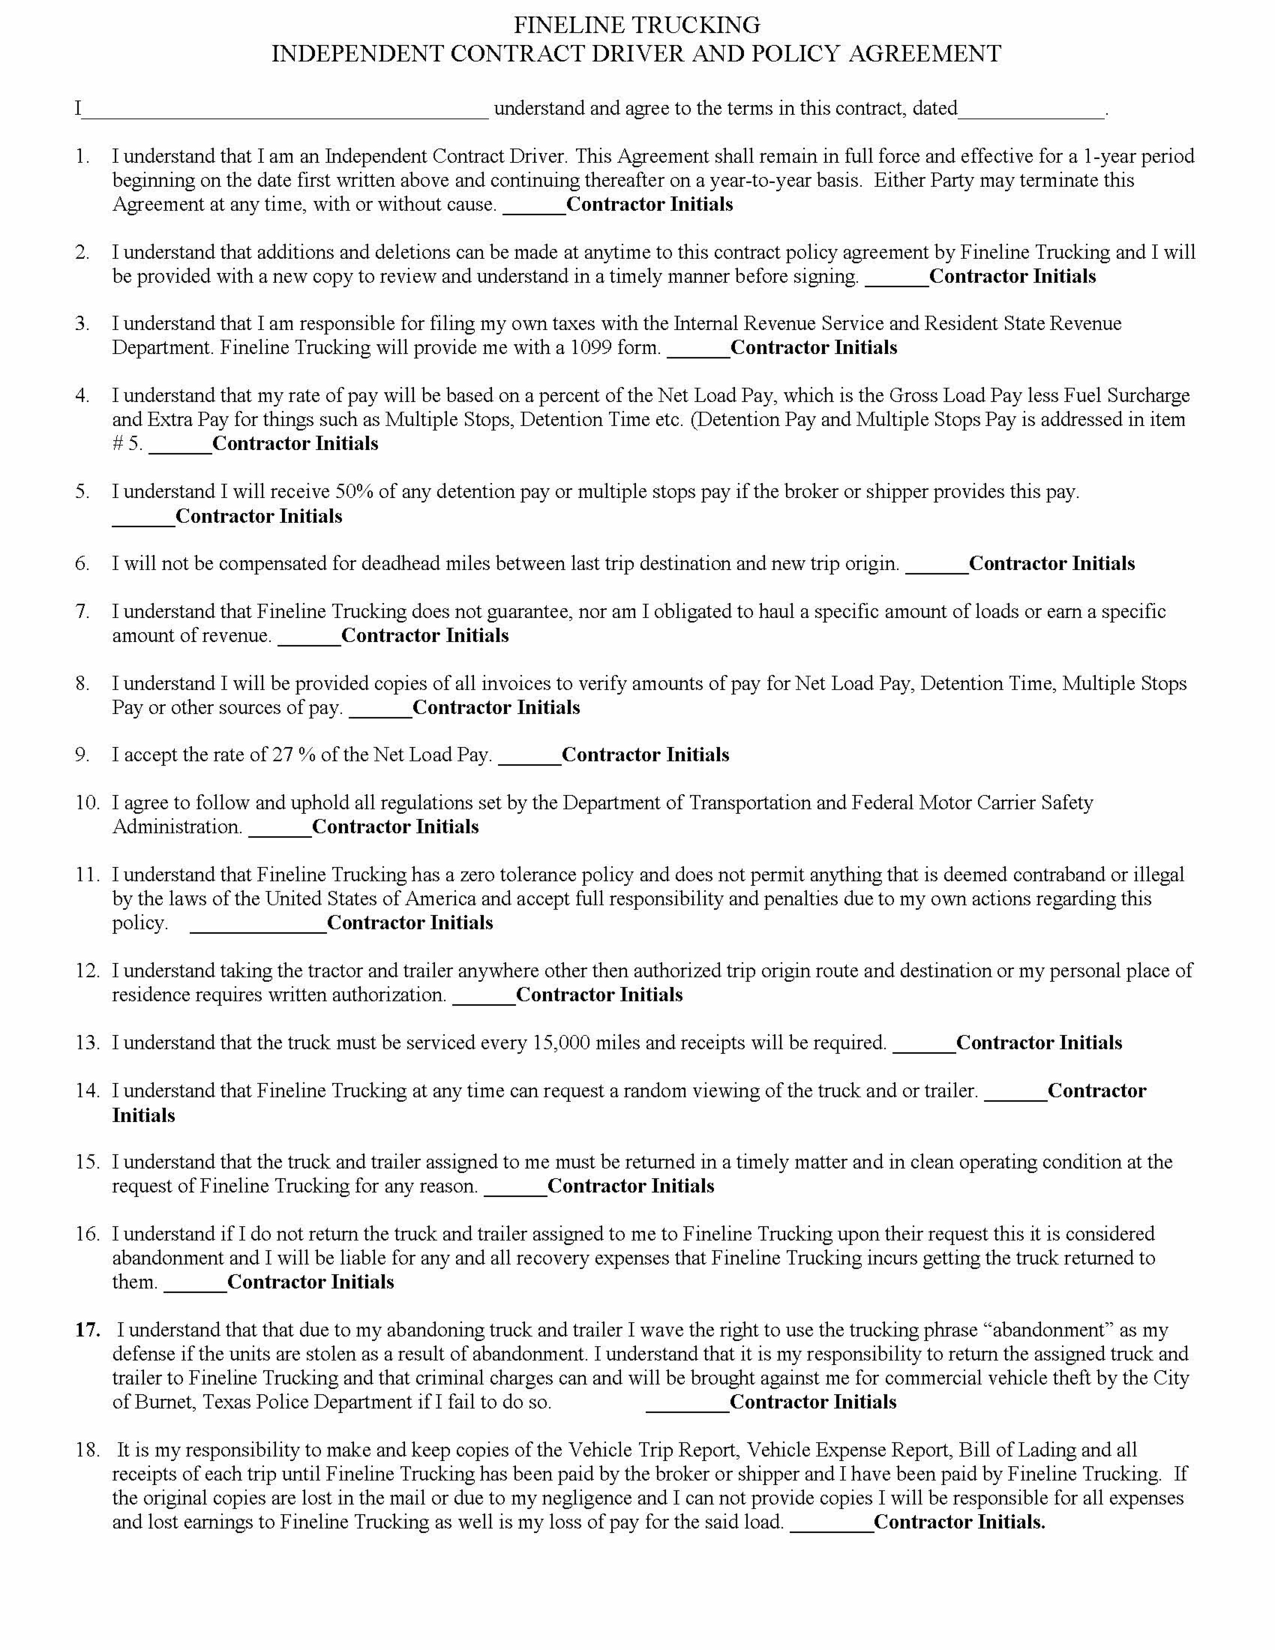 Truck Driver Contract Agreement Free Printable Documents